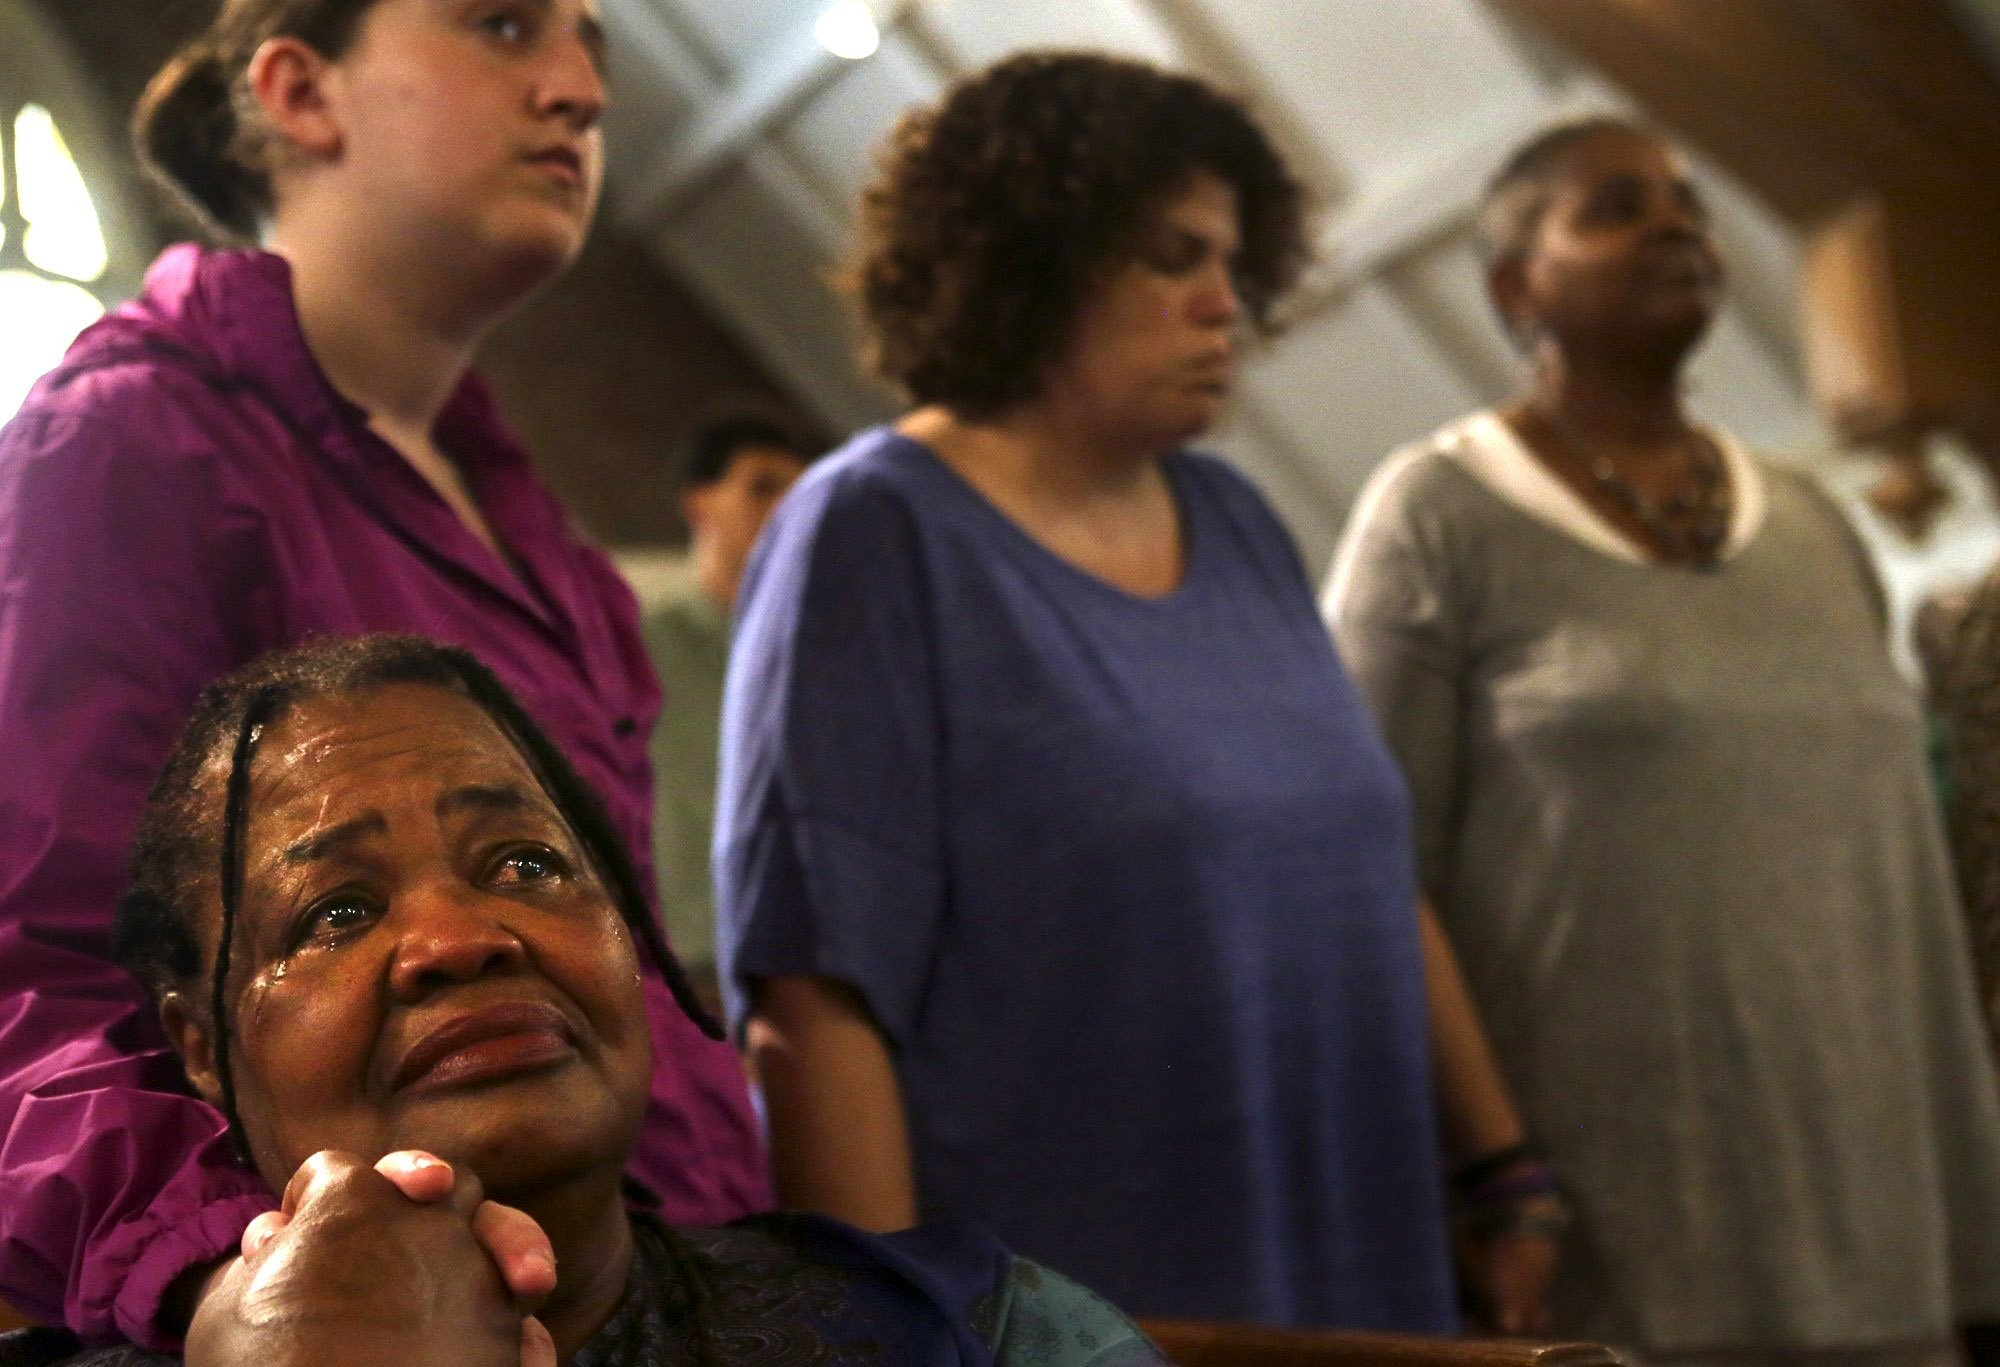 Romona Taylor Williams (bottom left) of St. louis, holds hands with 16-year-old Zoey Fleisher, also of St. Louis, during an interfaith prayer vigil for the victims of the shooting at Emanuel African Methodist Episcopal Church in Charleston, S.C. at St. Paul African Methodist Episcopal Church in St. Louis on Wednesday, June 17, 2015.